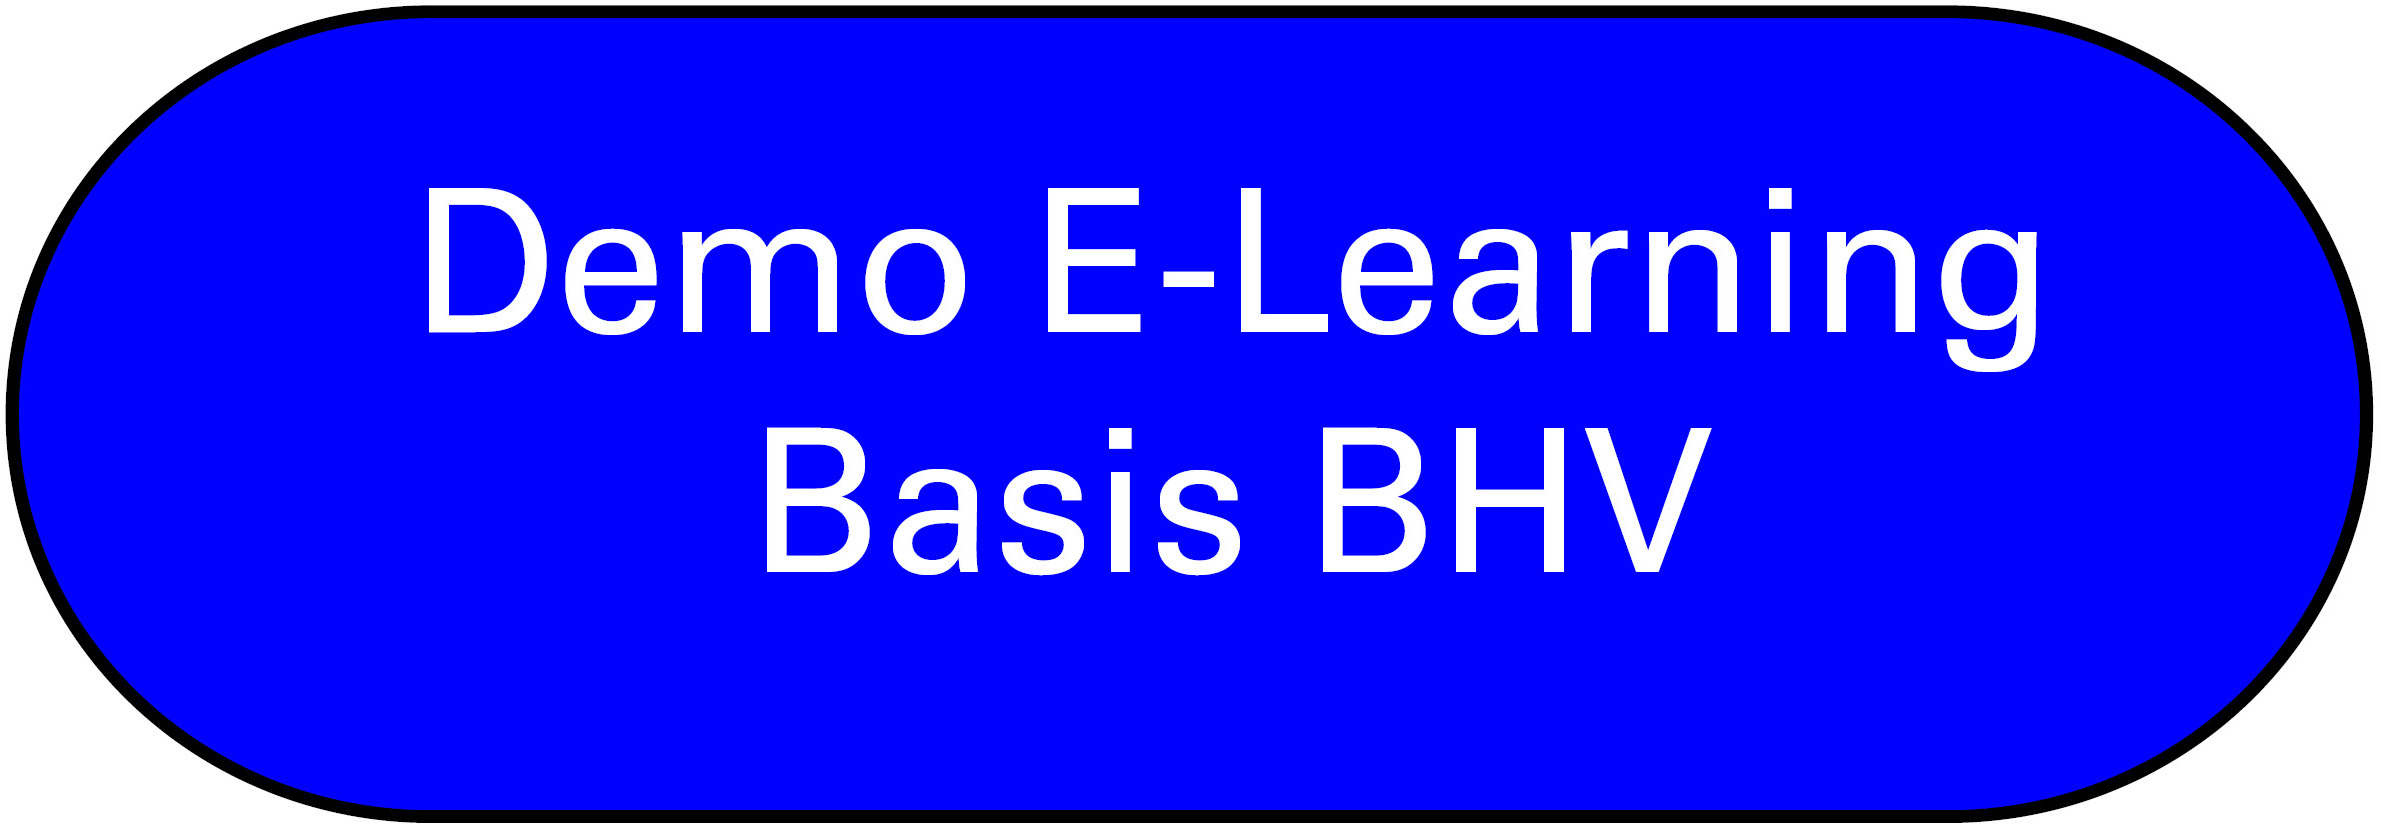 E Learning Basis BHV